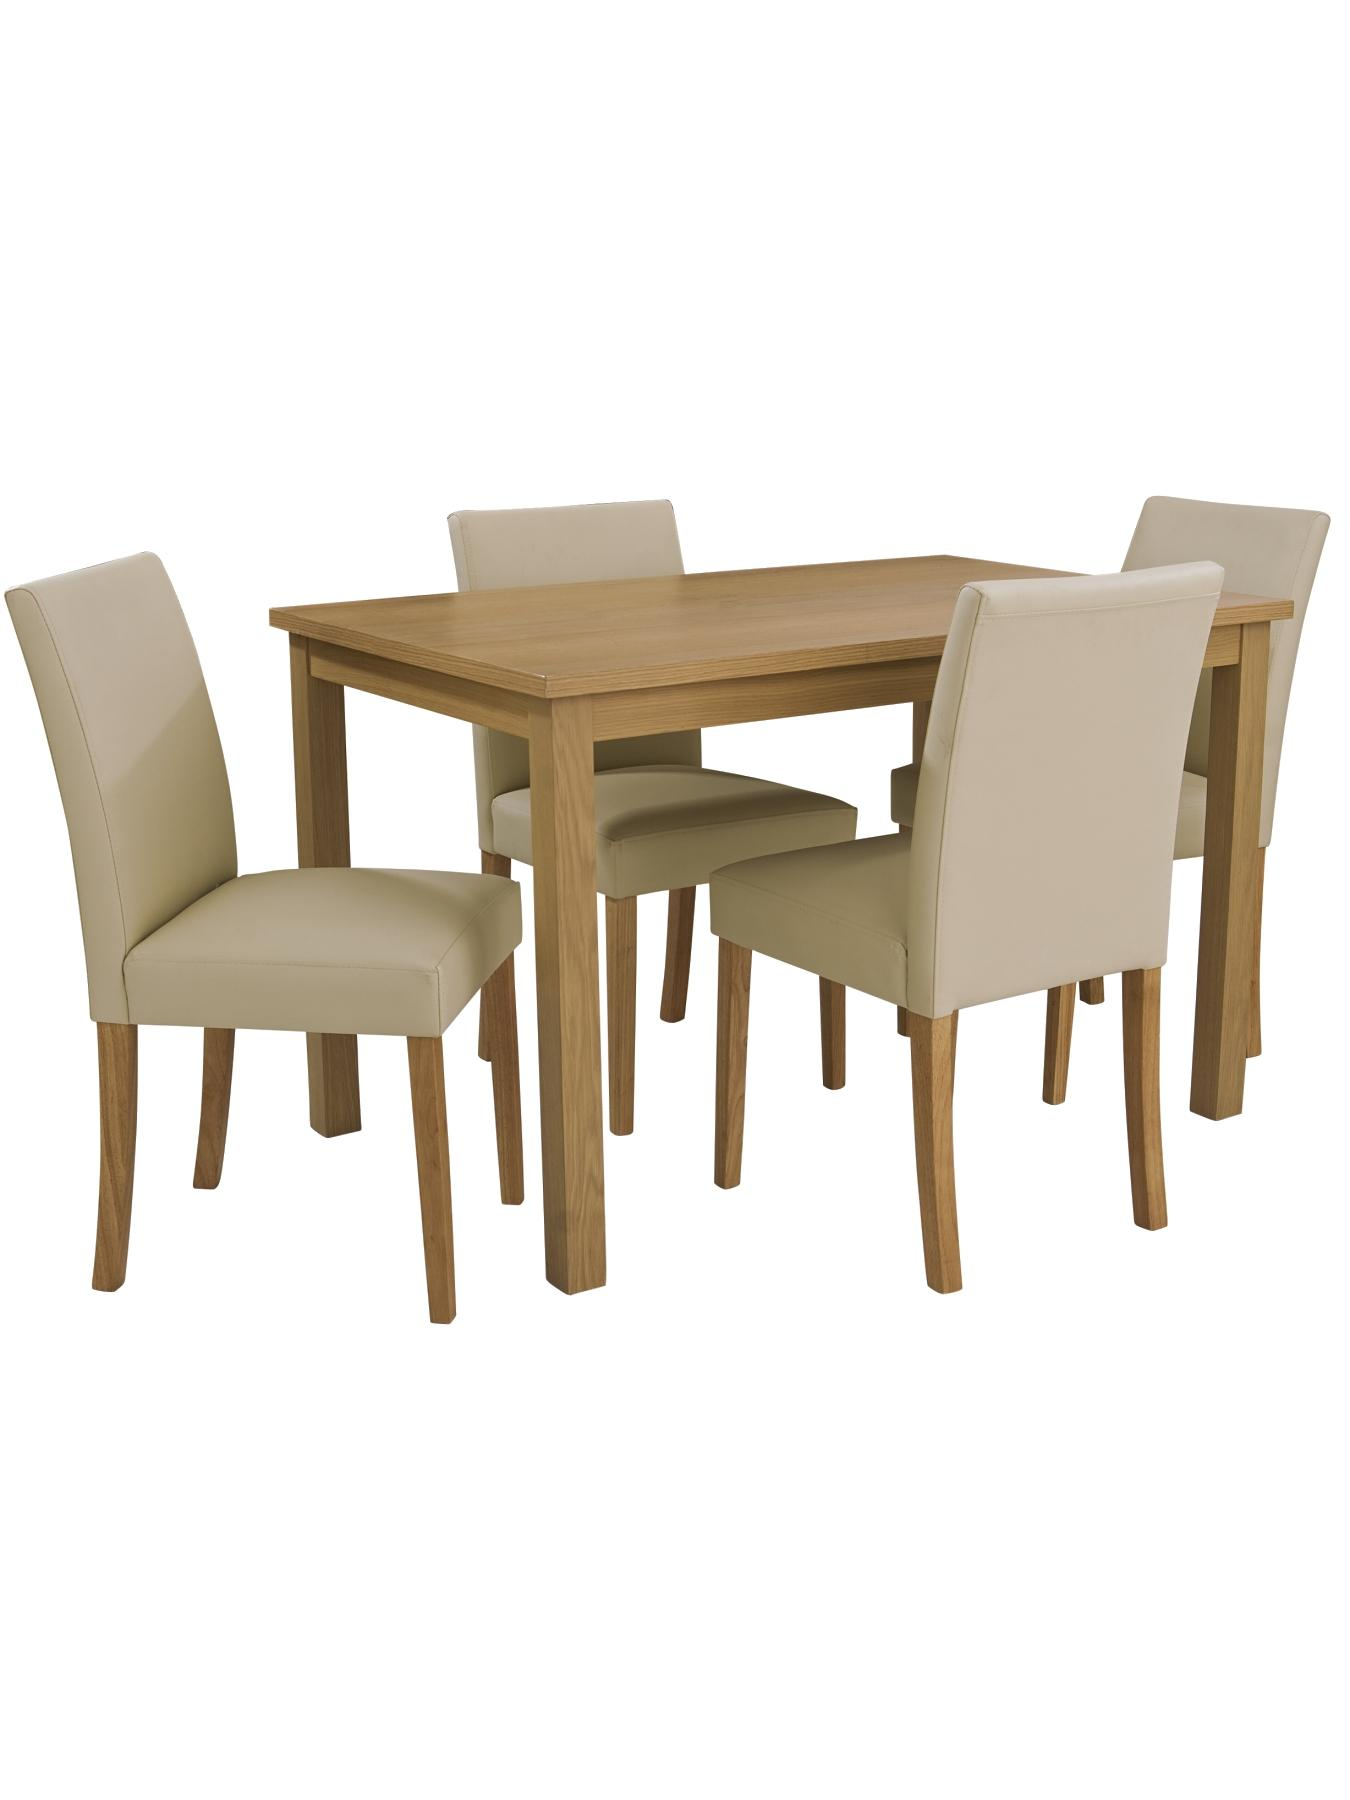 Modern Contemporary Dining Sets 2 contemporary